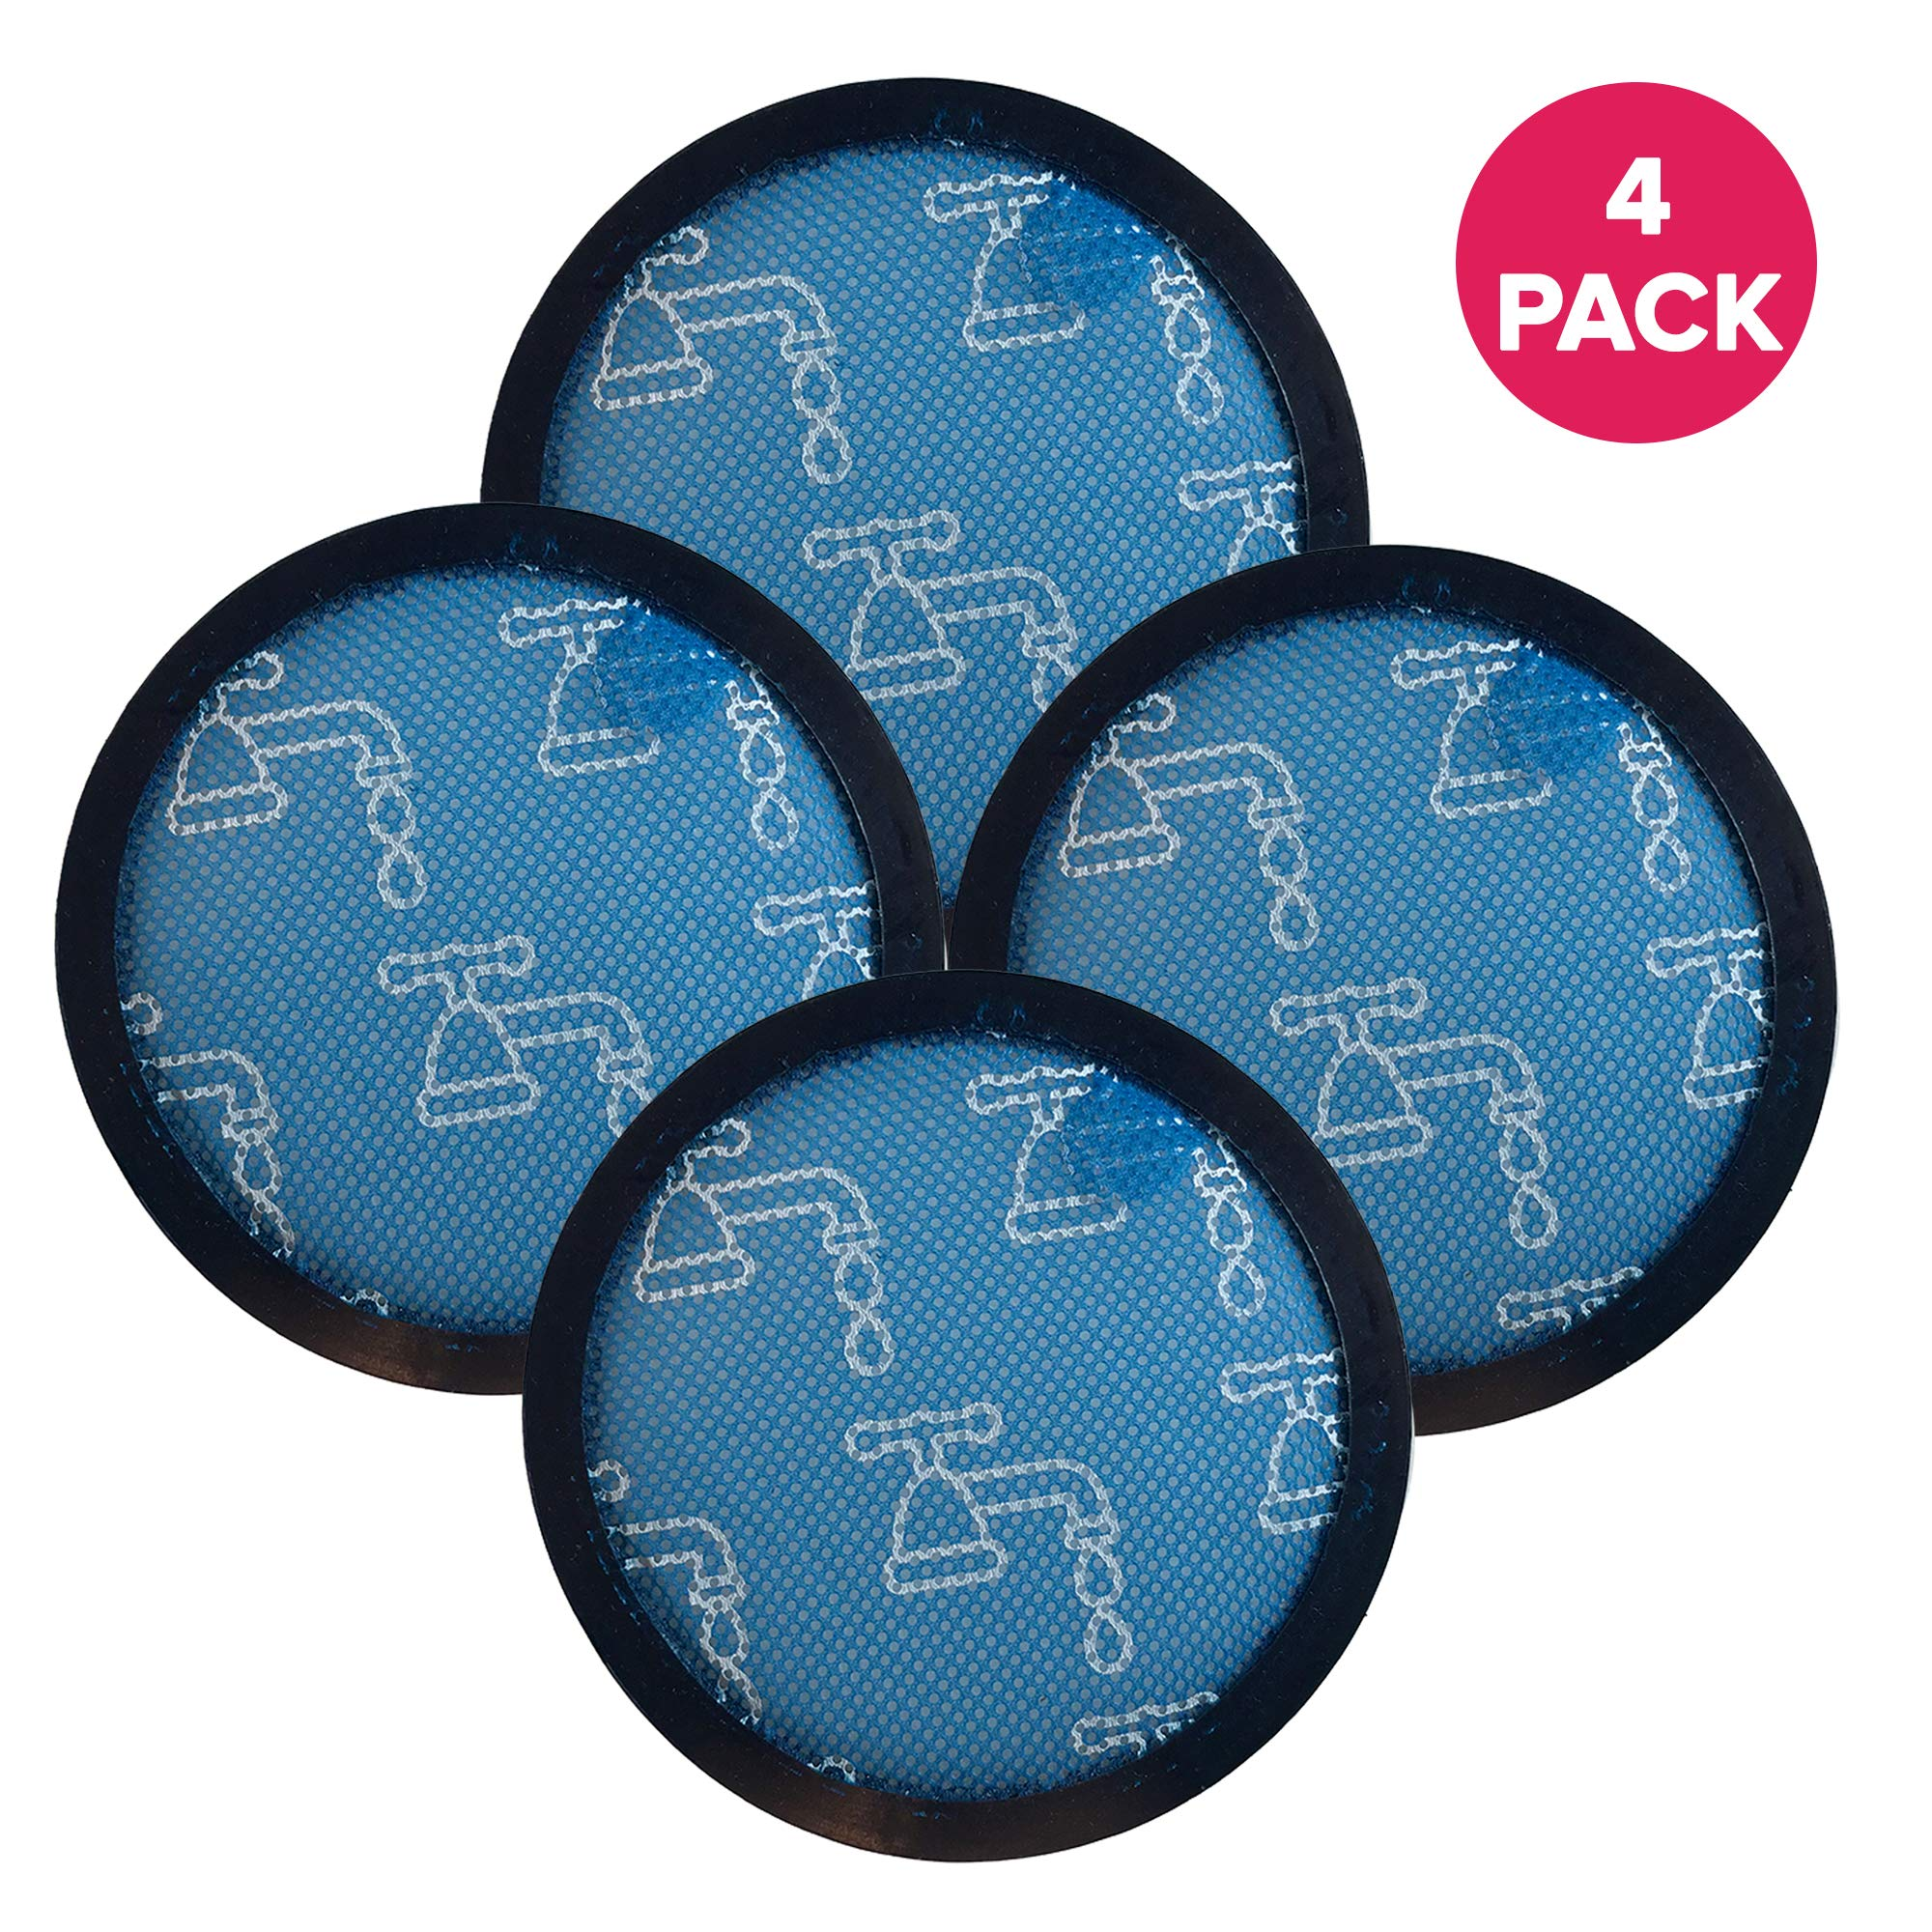 Crucial Vacuum Air Filter Replacement Part # 911236-01 - Compatible with Dyson DC-17 - Replaces Pre-Motor Filters - for Models Dyson DC17 Pre-Filter - Durable, Washable, Vac Air Purifier (4 Pack)